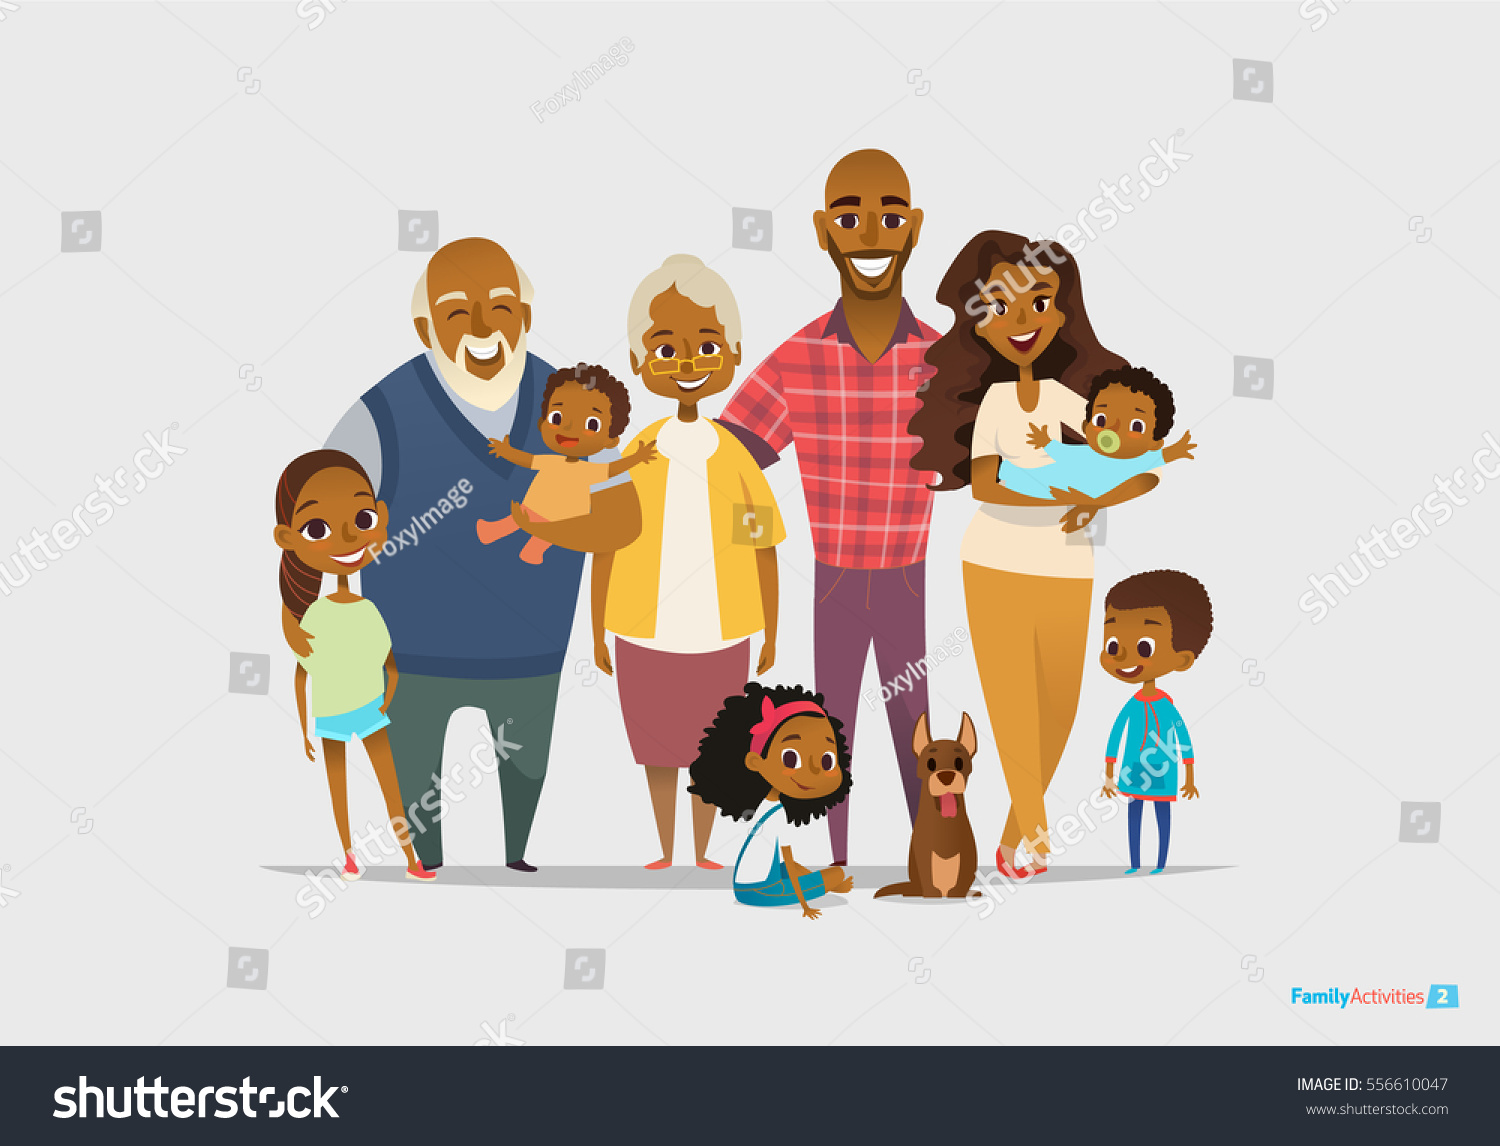 Cartoon Characters Mixed Together : Big happy family portrait three generations stock vector